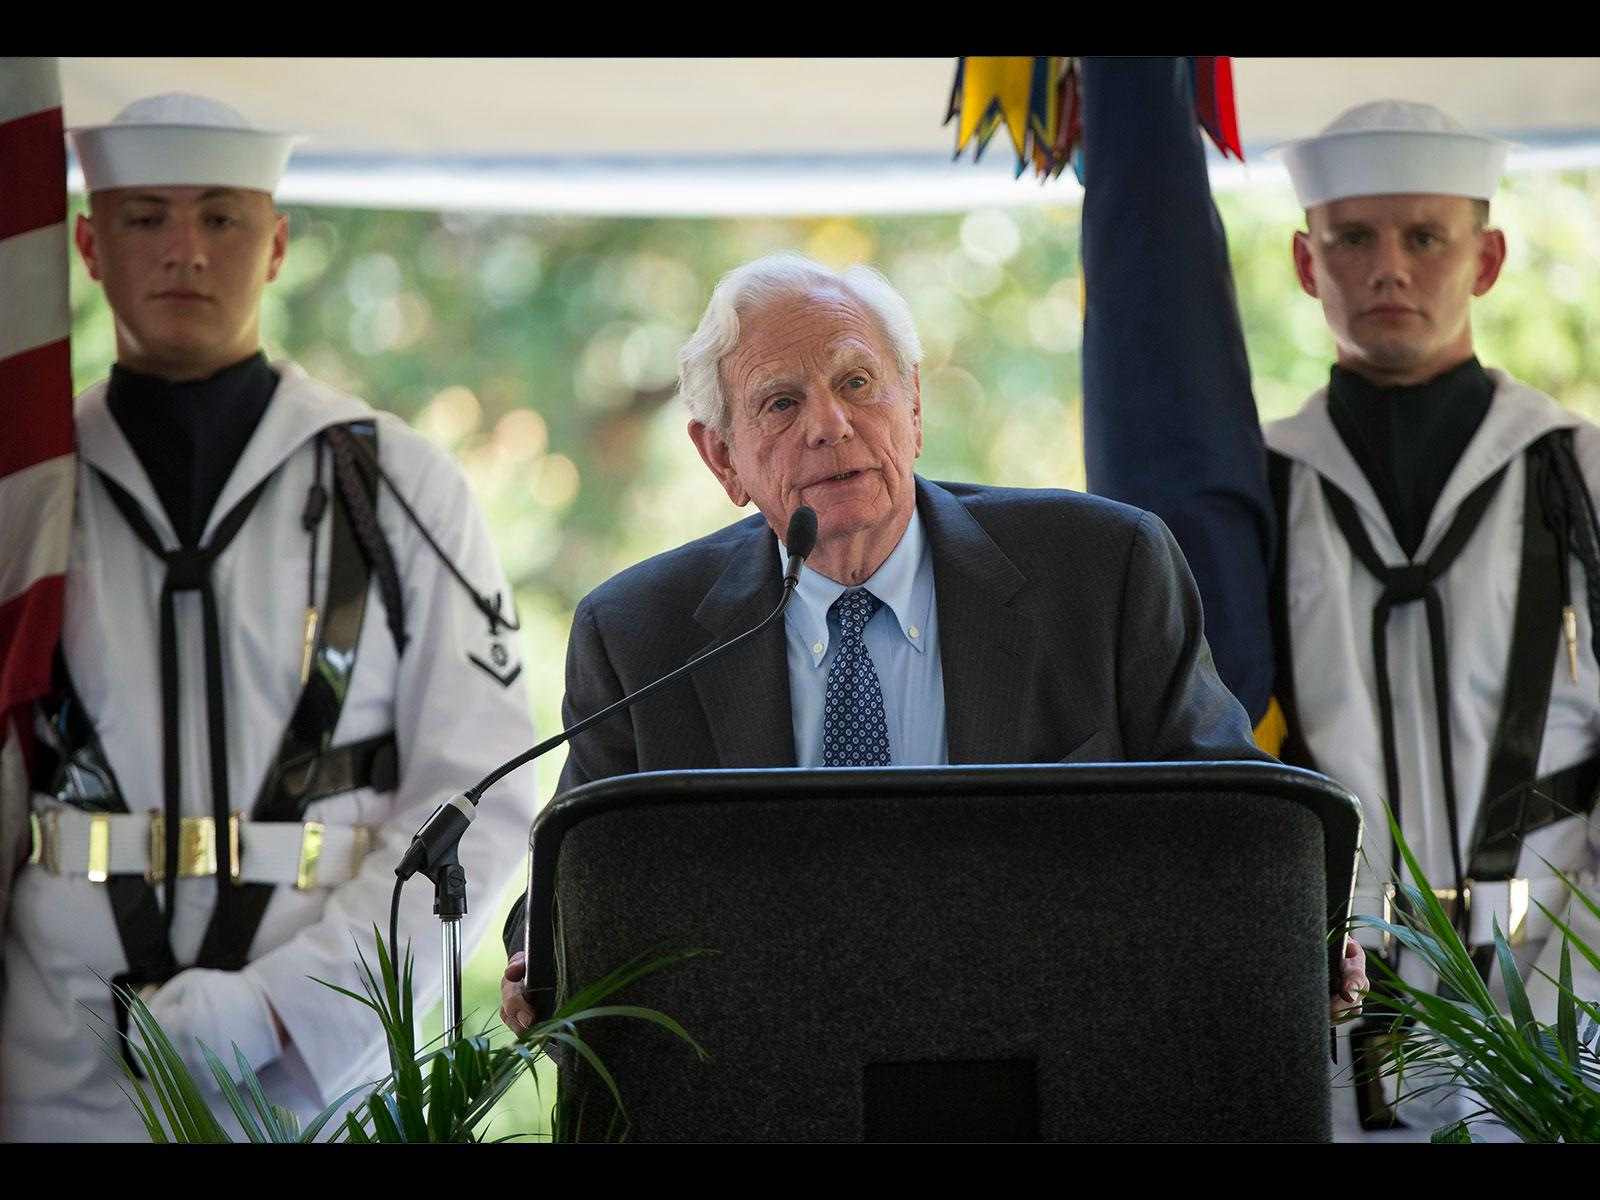 Neil Armstrong's Friend Speaks at Service